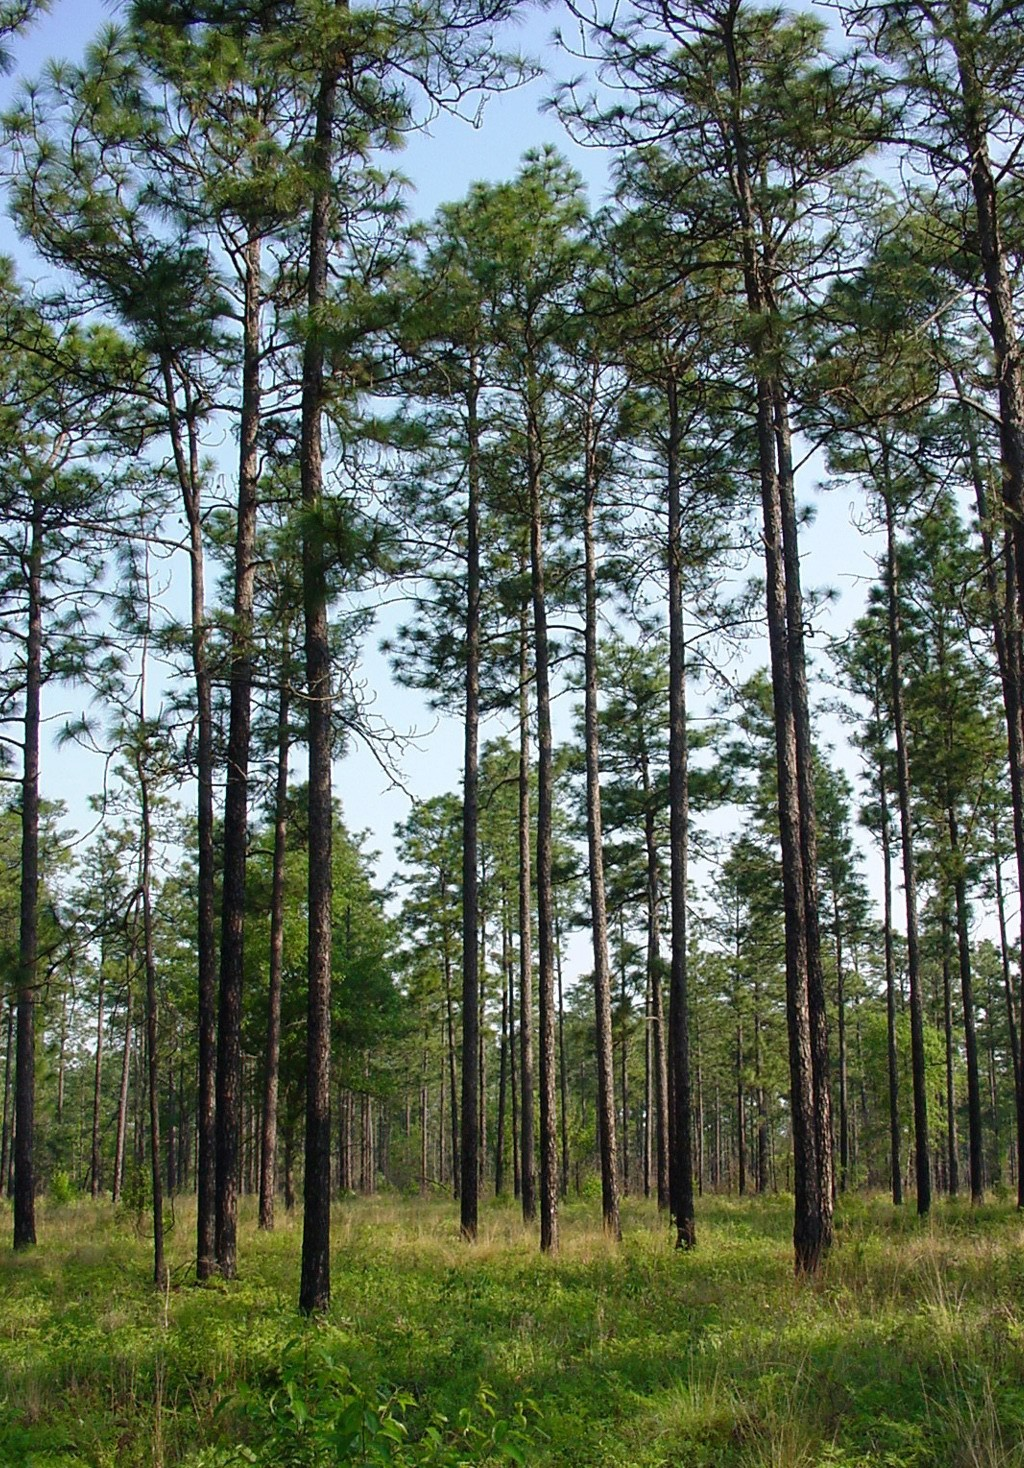 Trees Of Santa Cruz County Nyssa Sylvatica: Alabama Trees For Sale